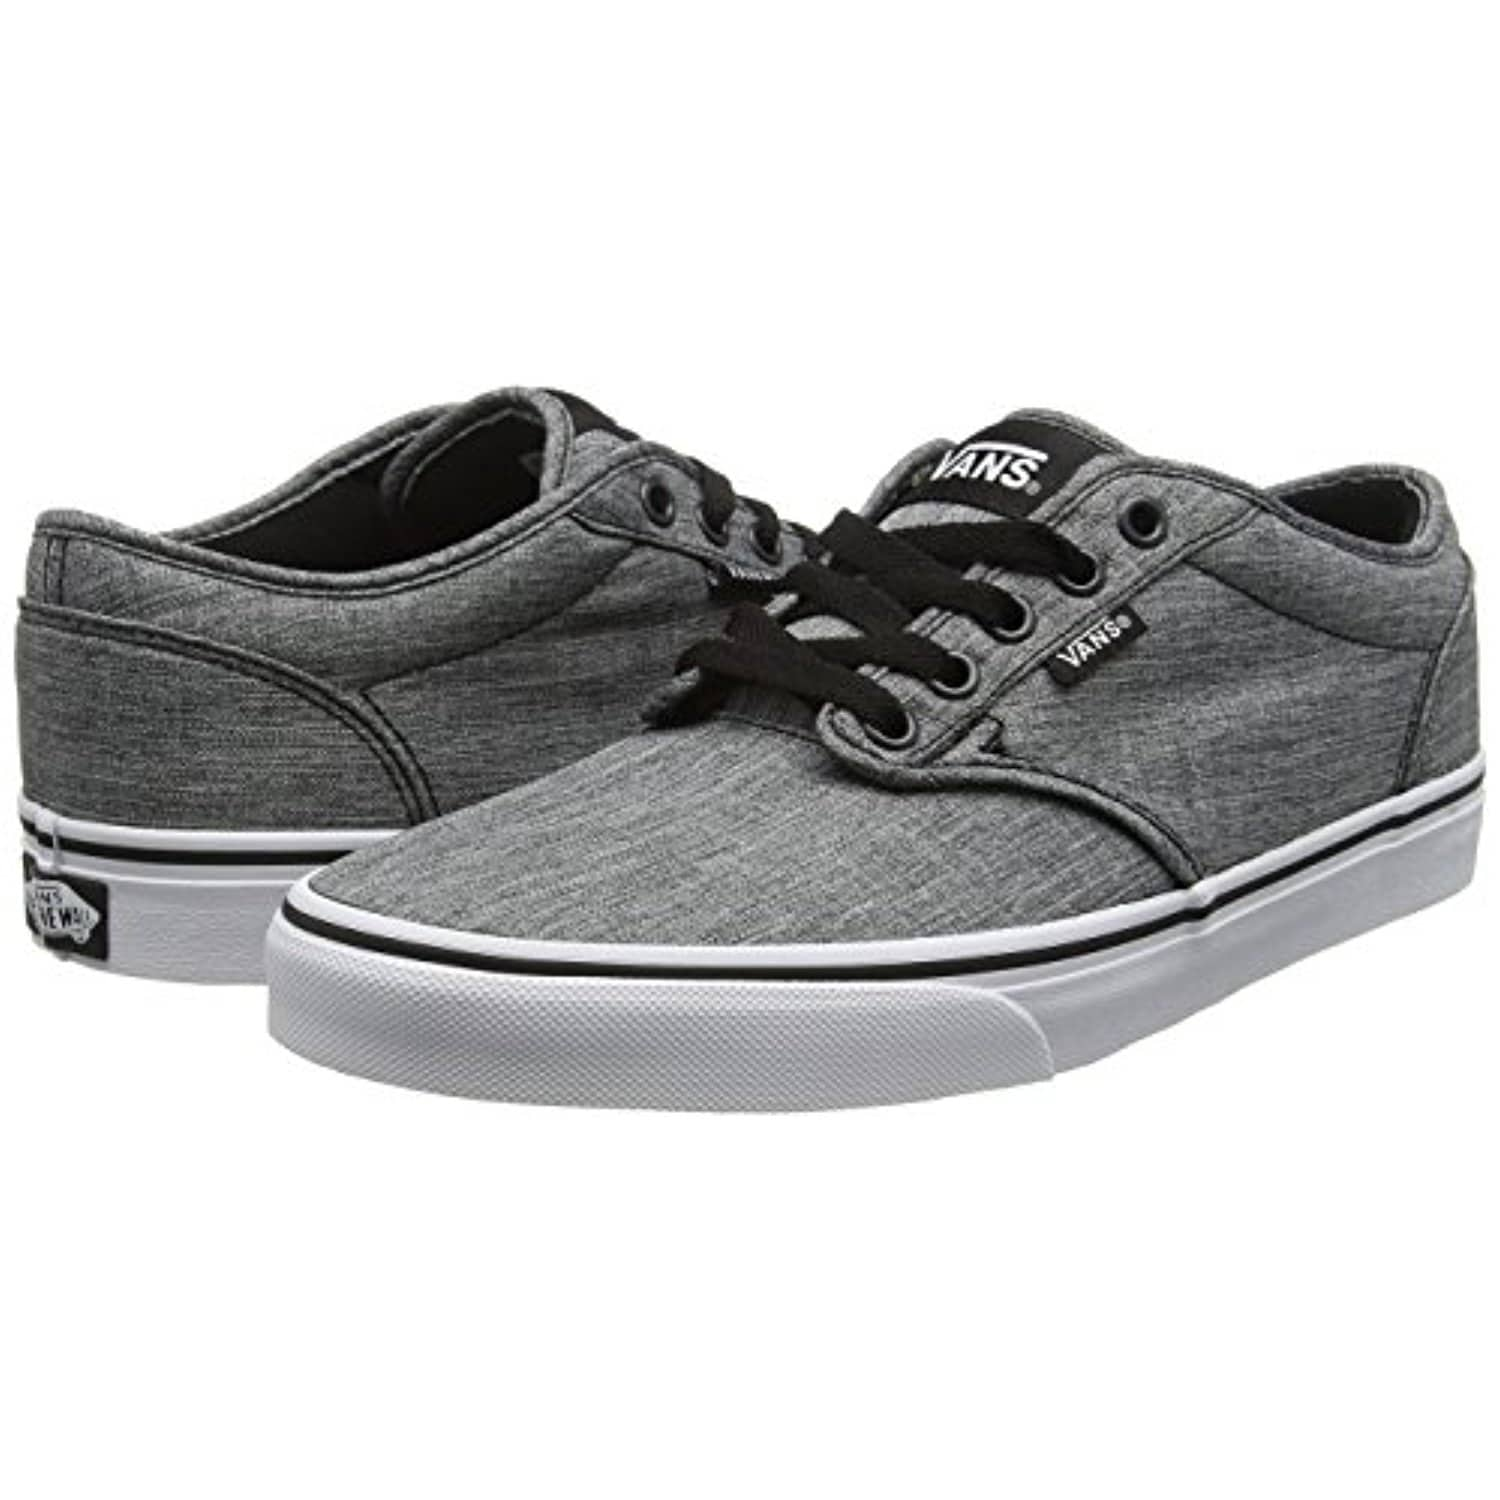 f13eb4c789 Shop Vans Rock Textile-Black-White Atwood Shoe (Us 7